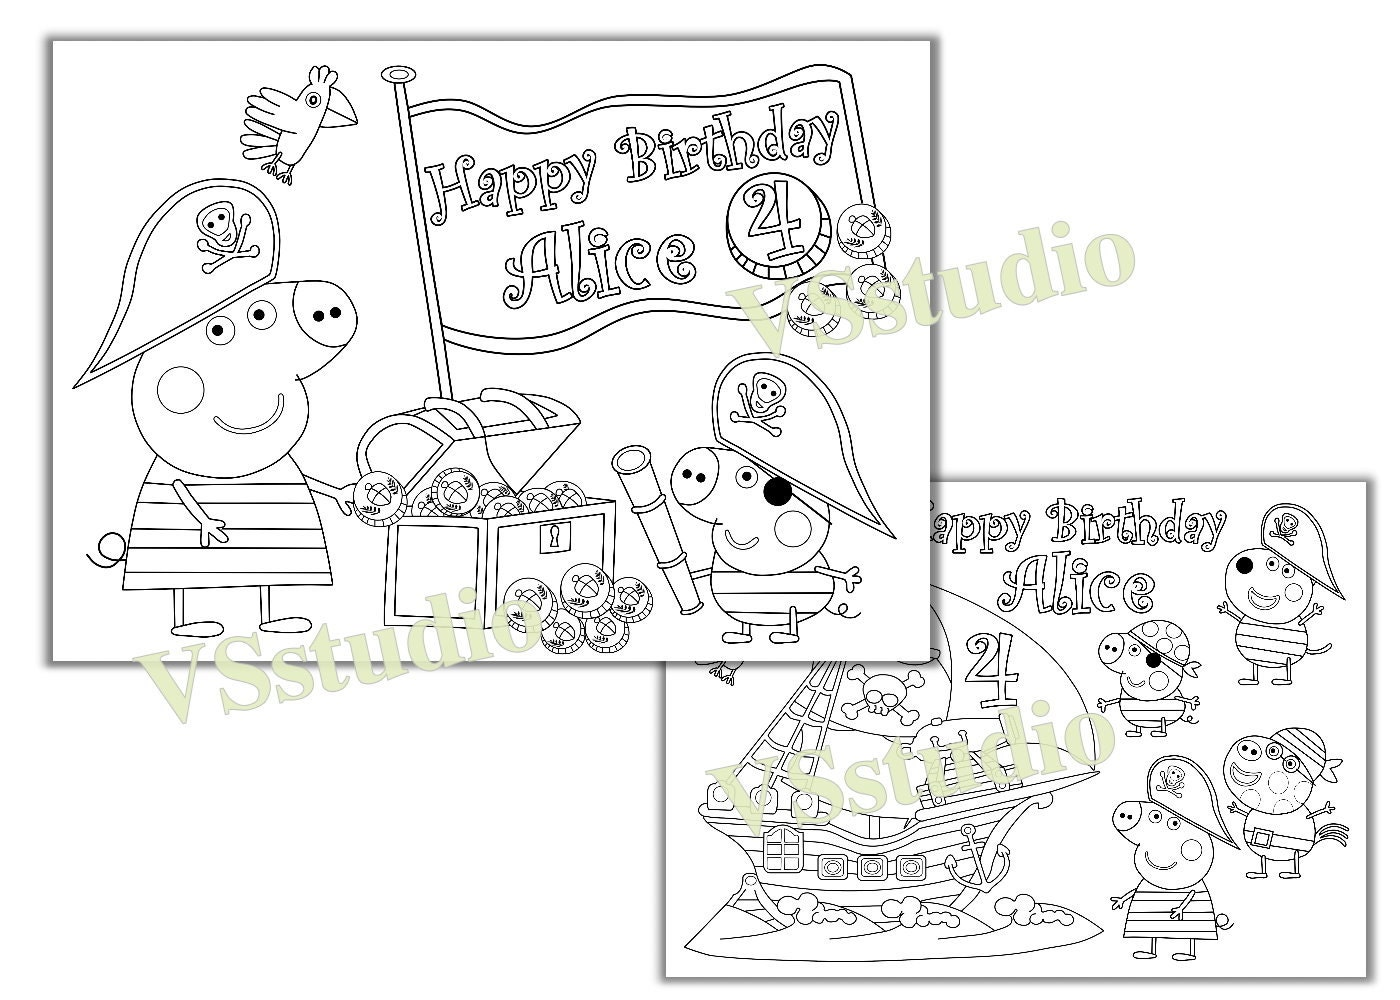 Peppa Pig Pirate Birthday Party coloring pages PDF file